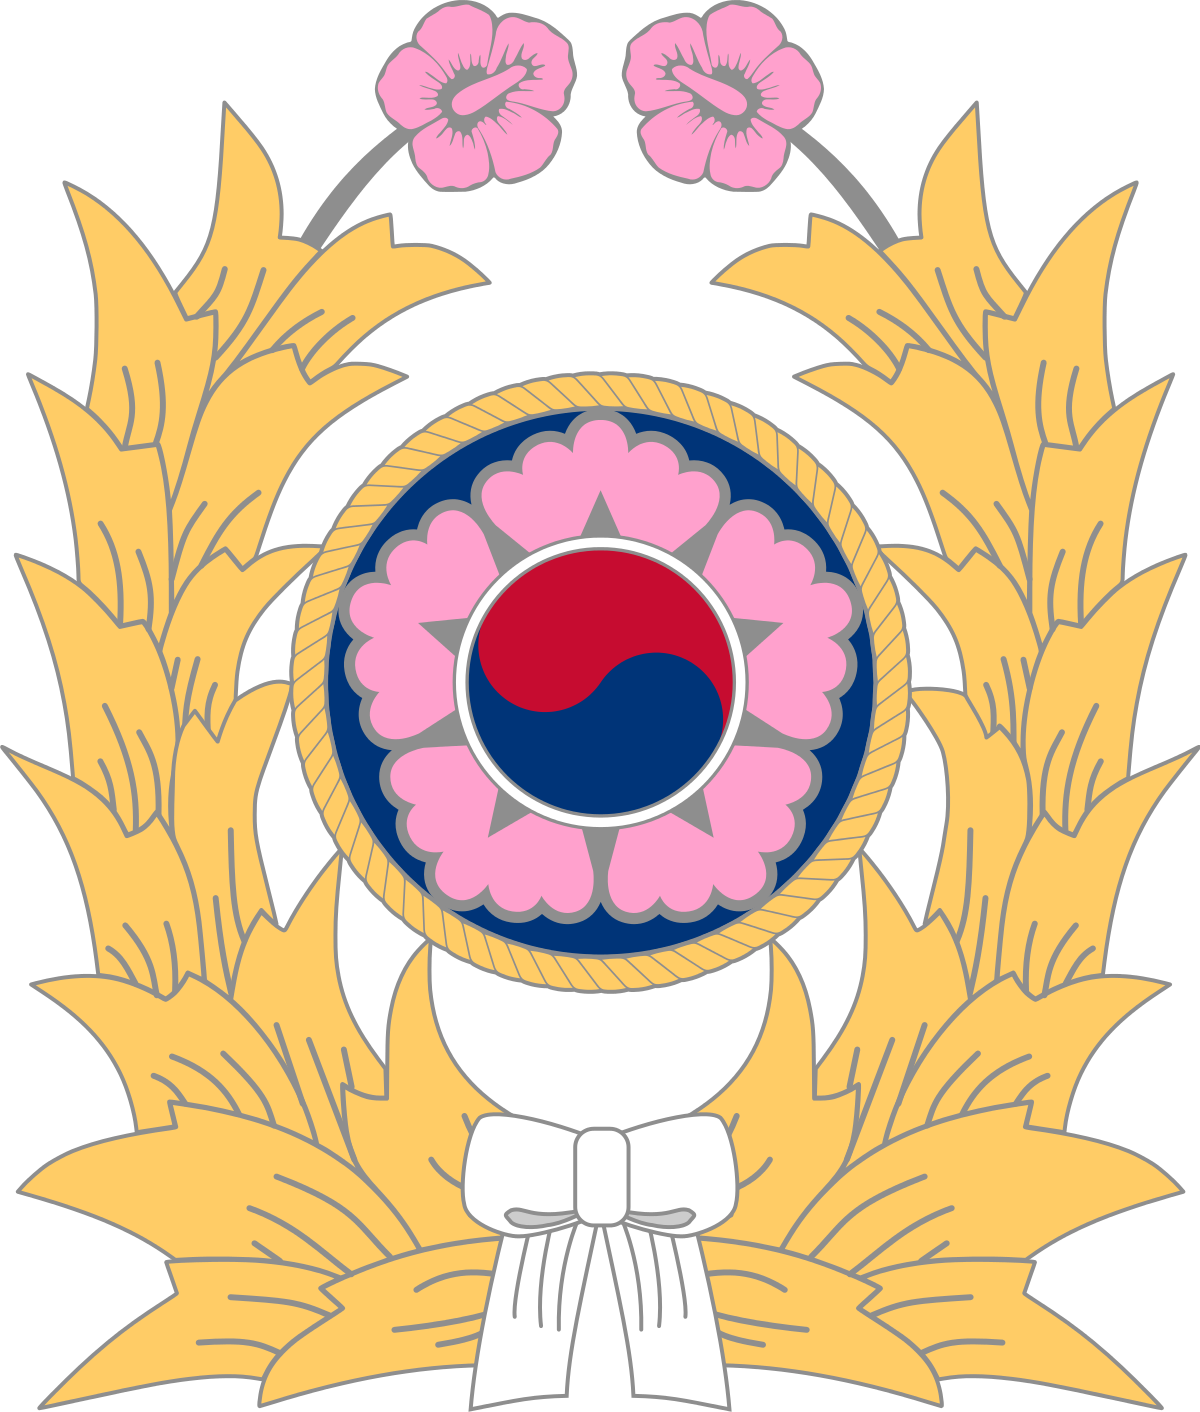 Republic of korea army. Soldiers clipart group soldier